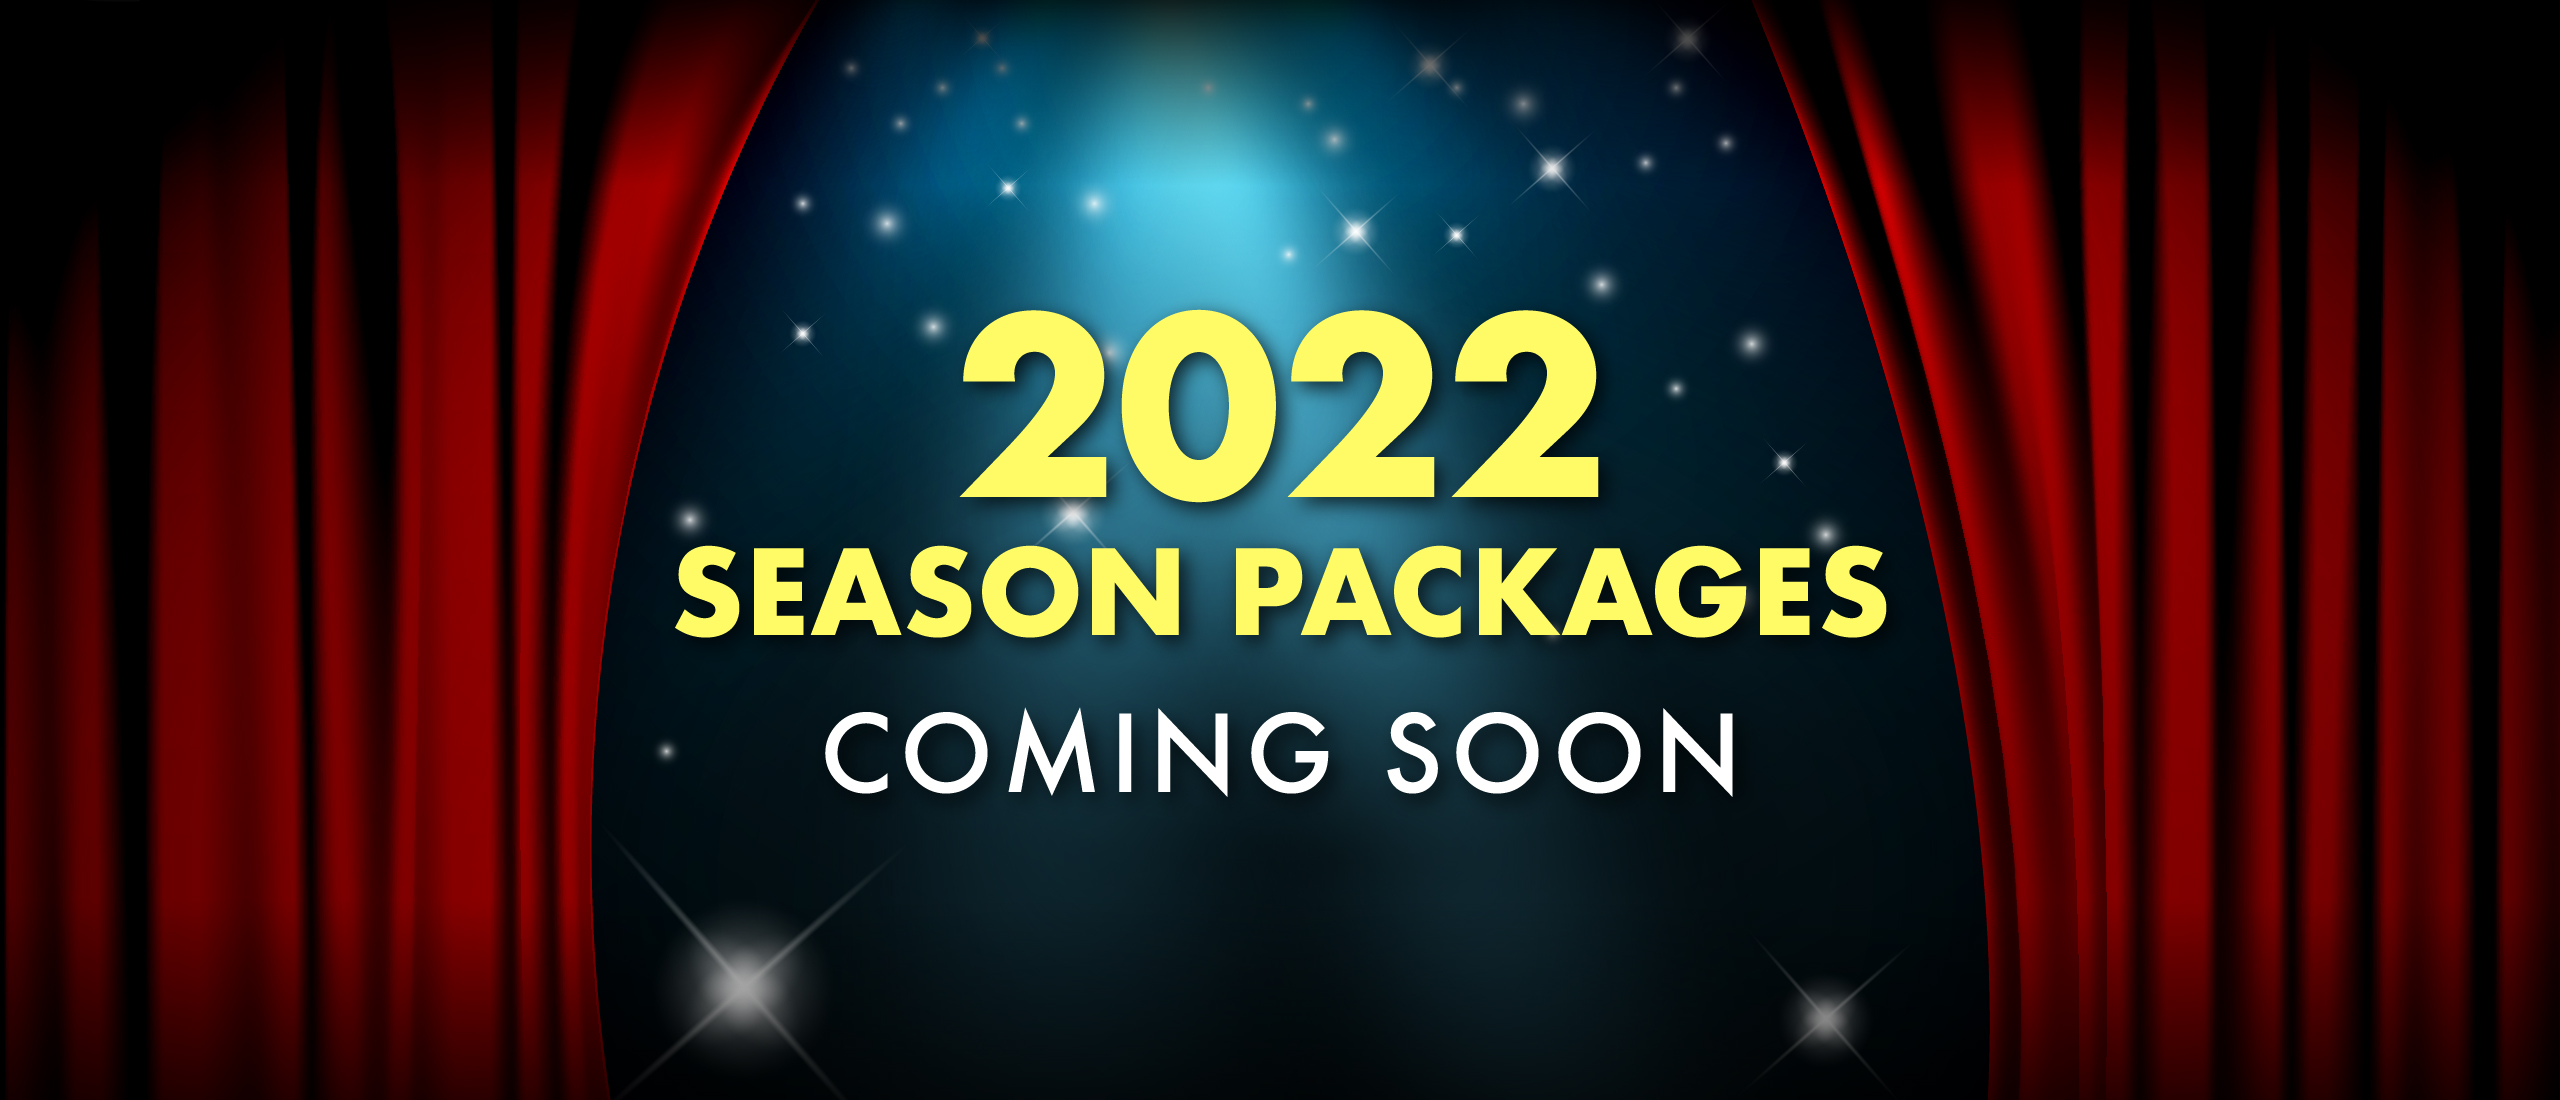 2022 packages coming soon